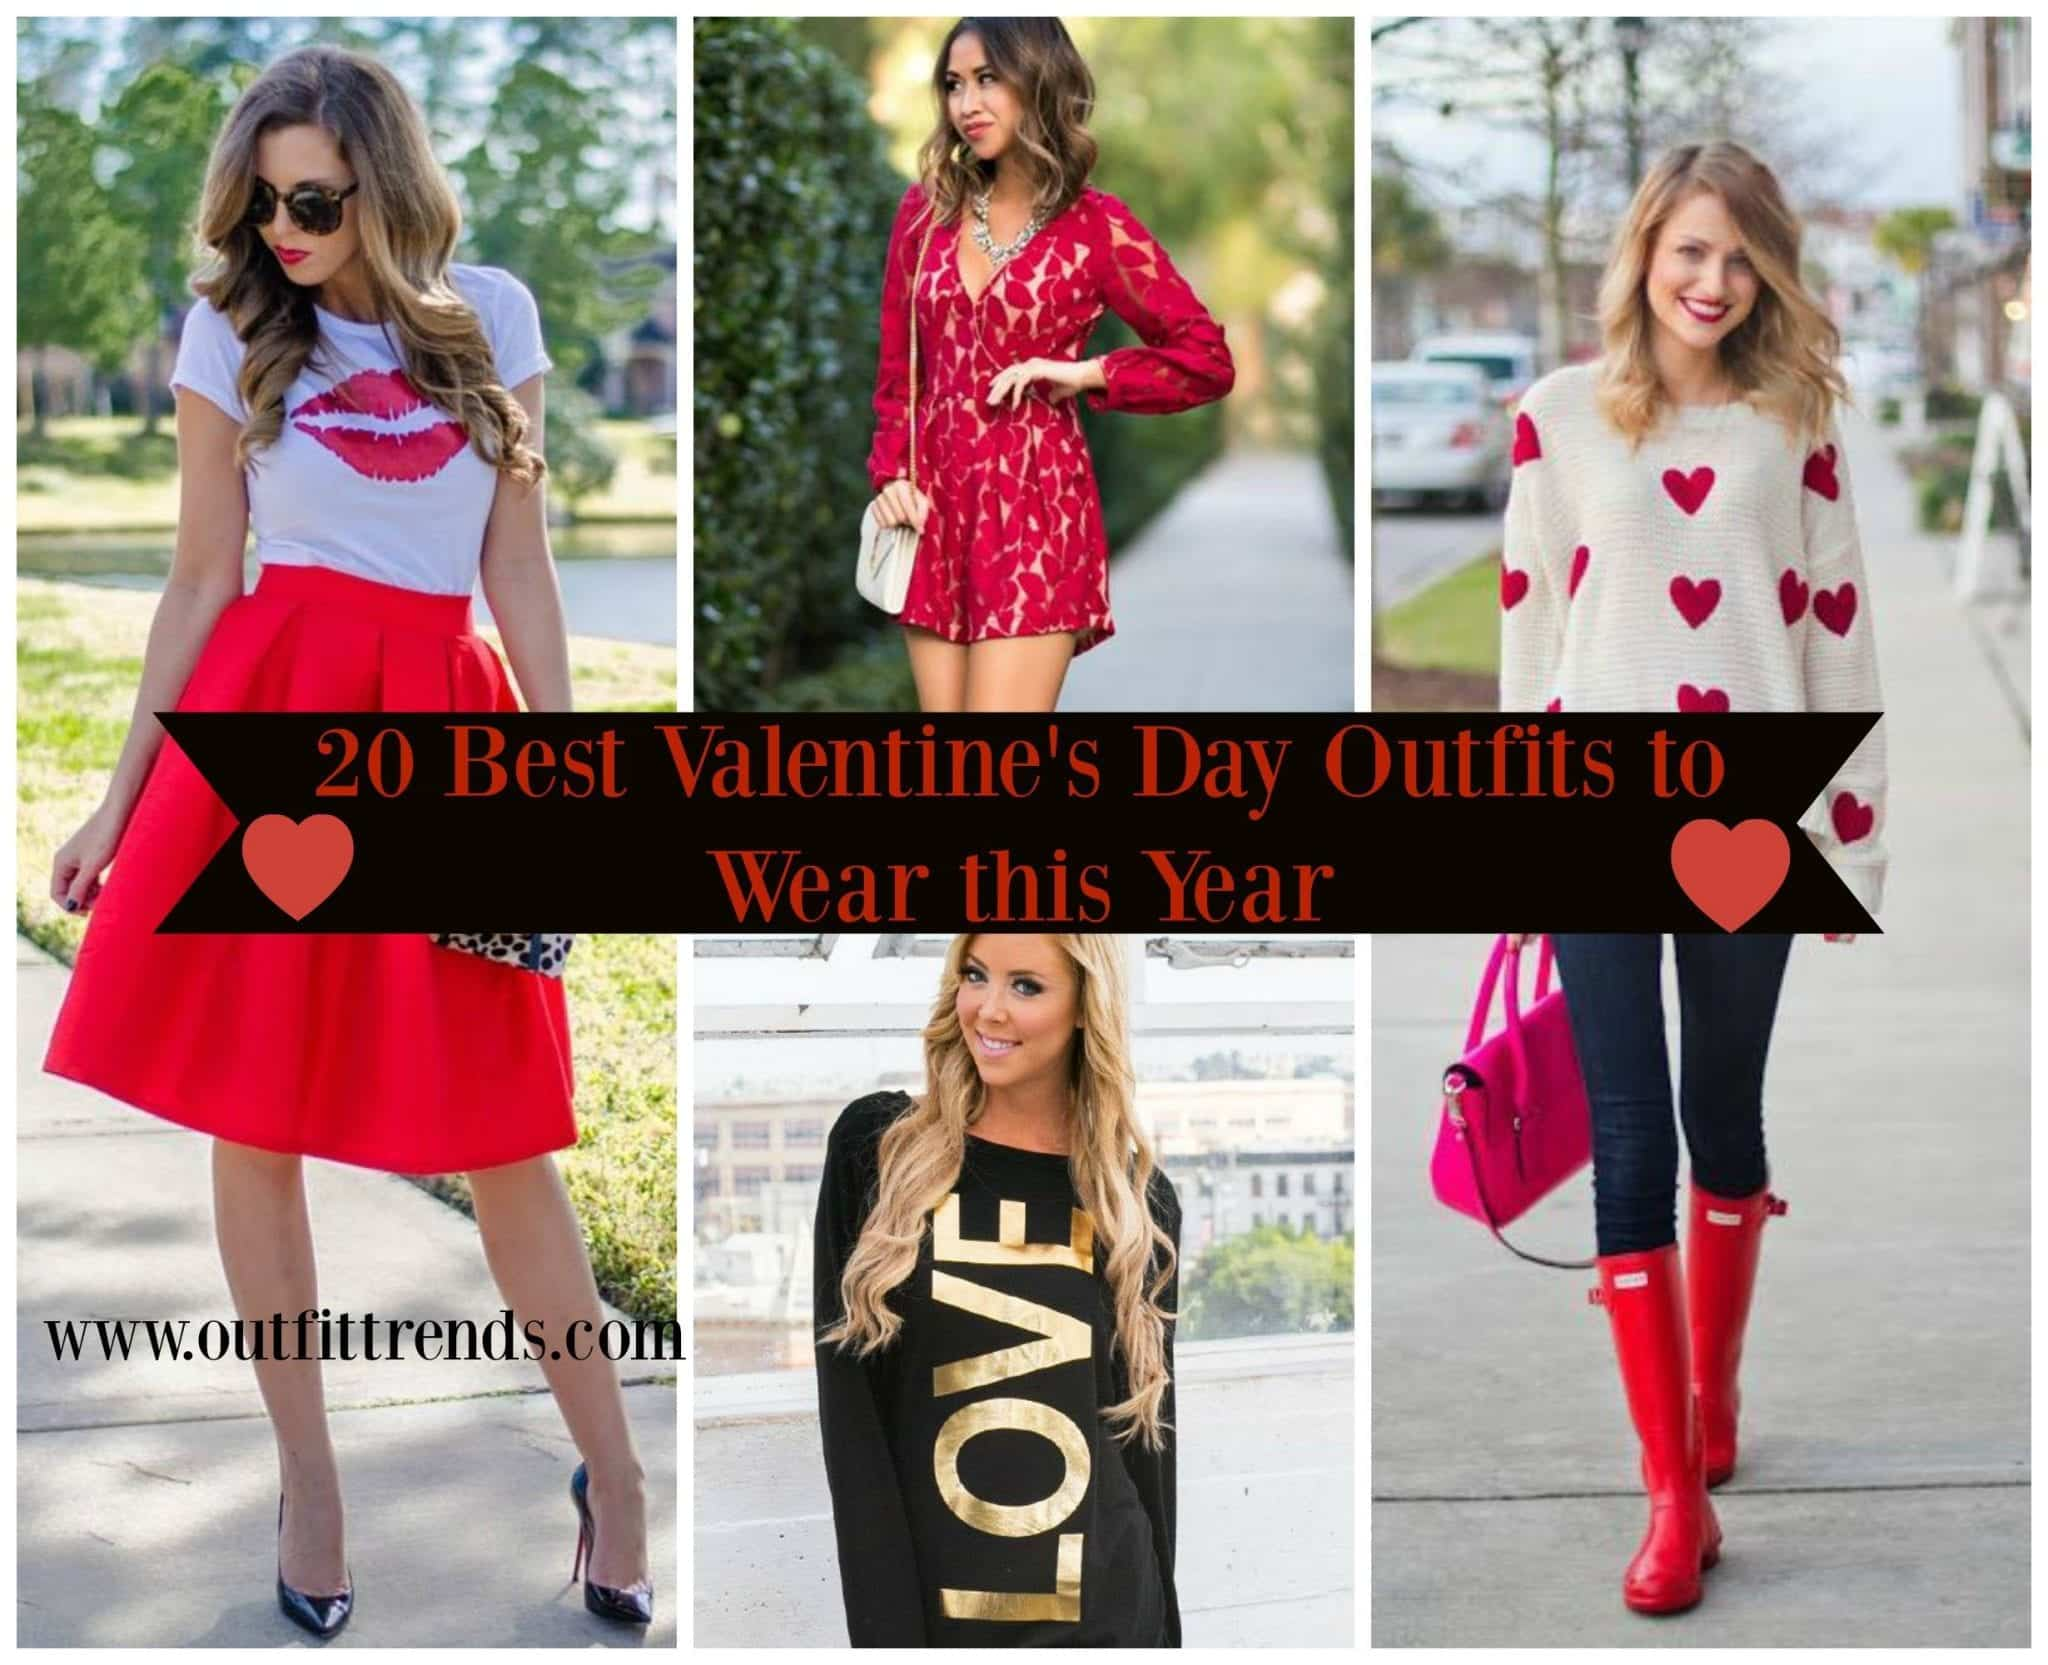 Top 20 Amazing Outfits Ideas For Valentine's Day 2018